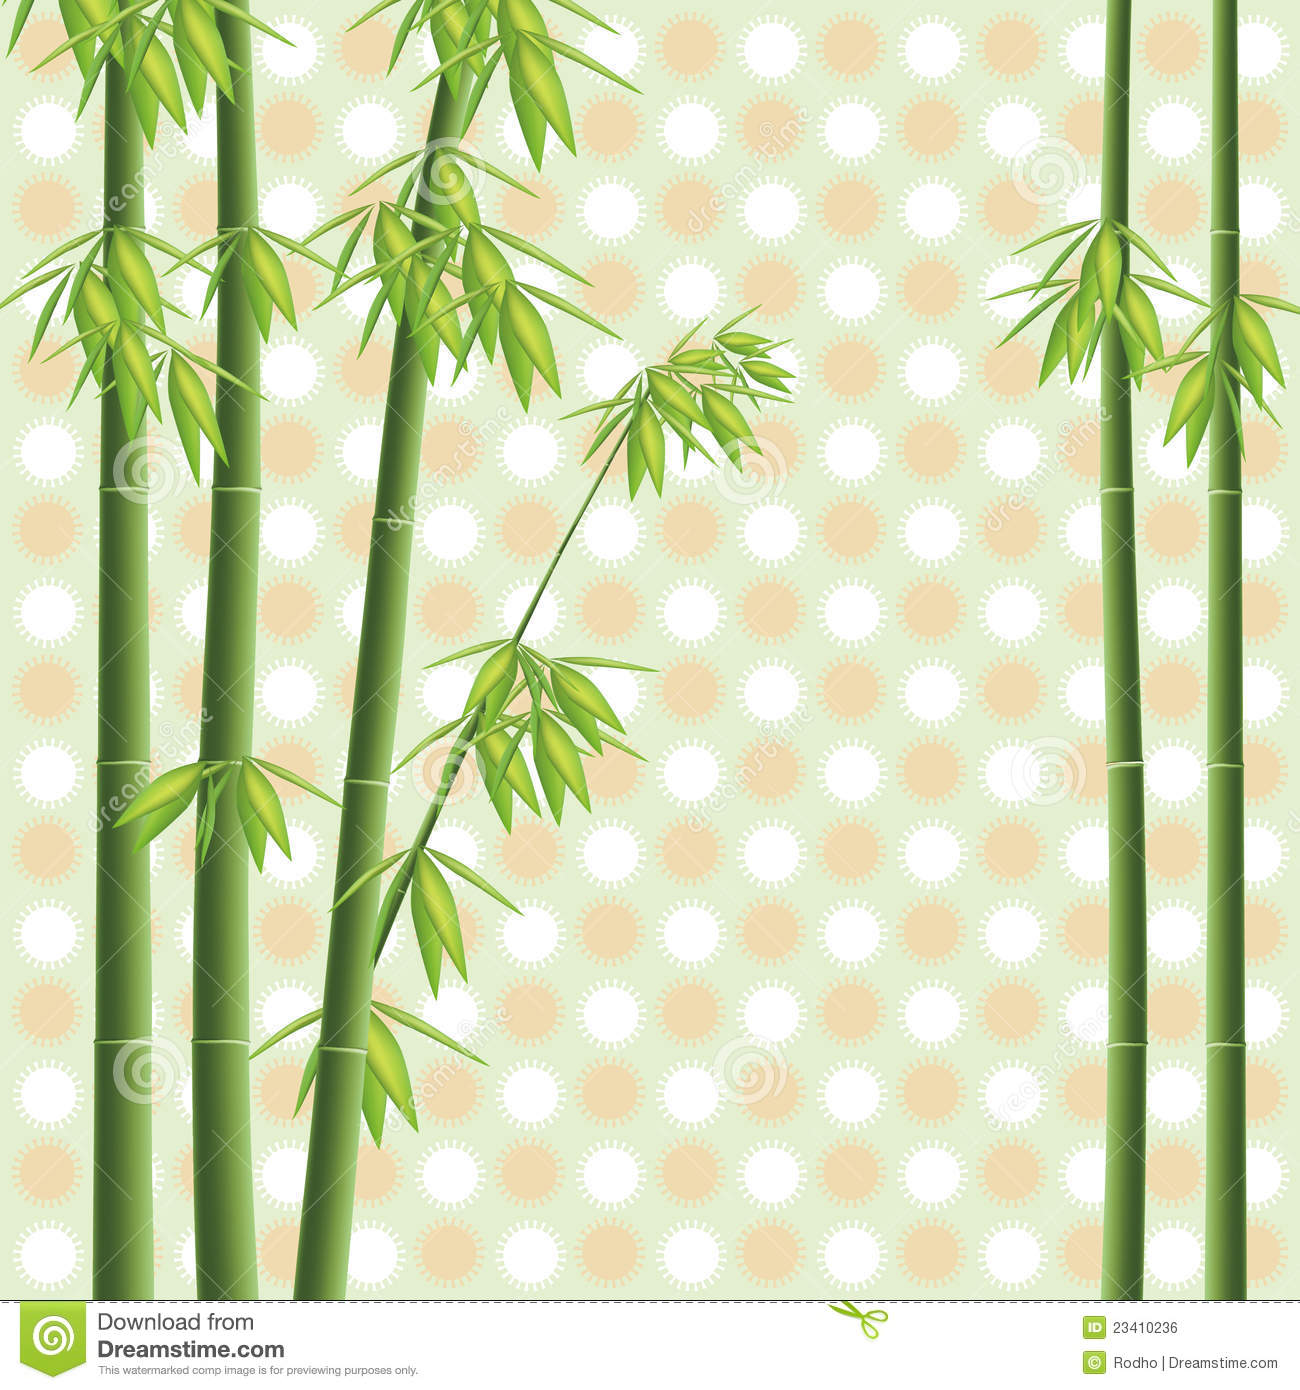 vector bamboo tree stock vector illustration of asian 23410236 dreamstime com